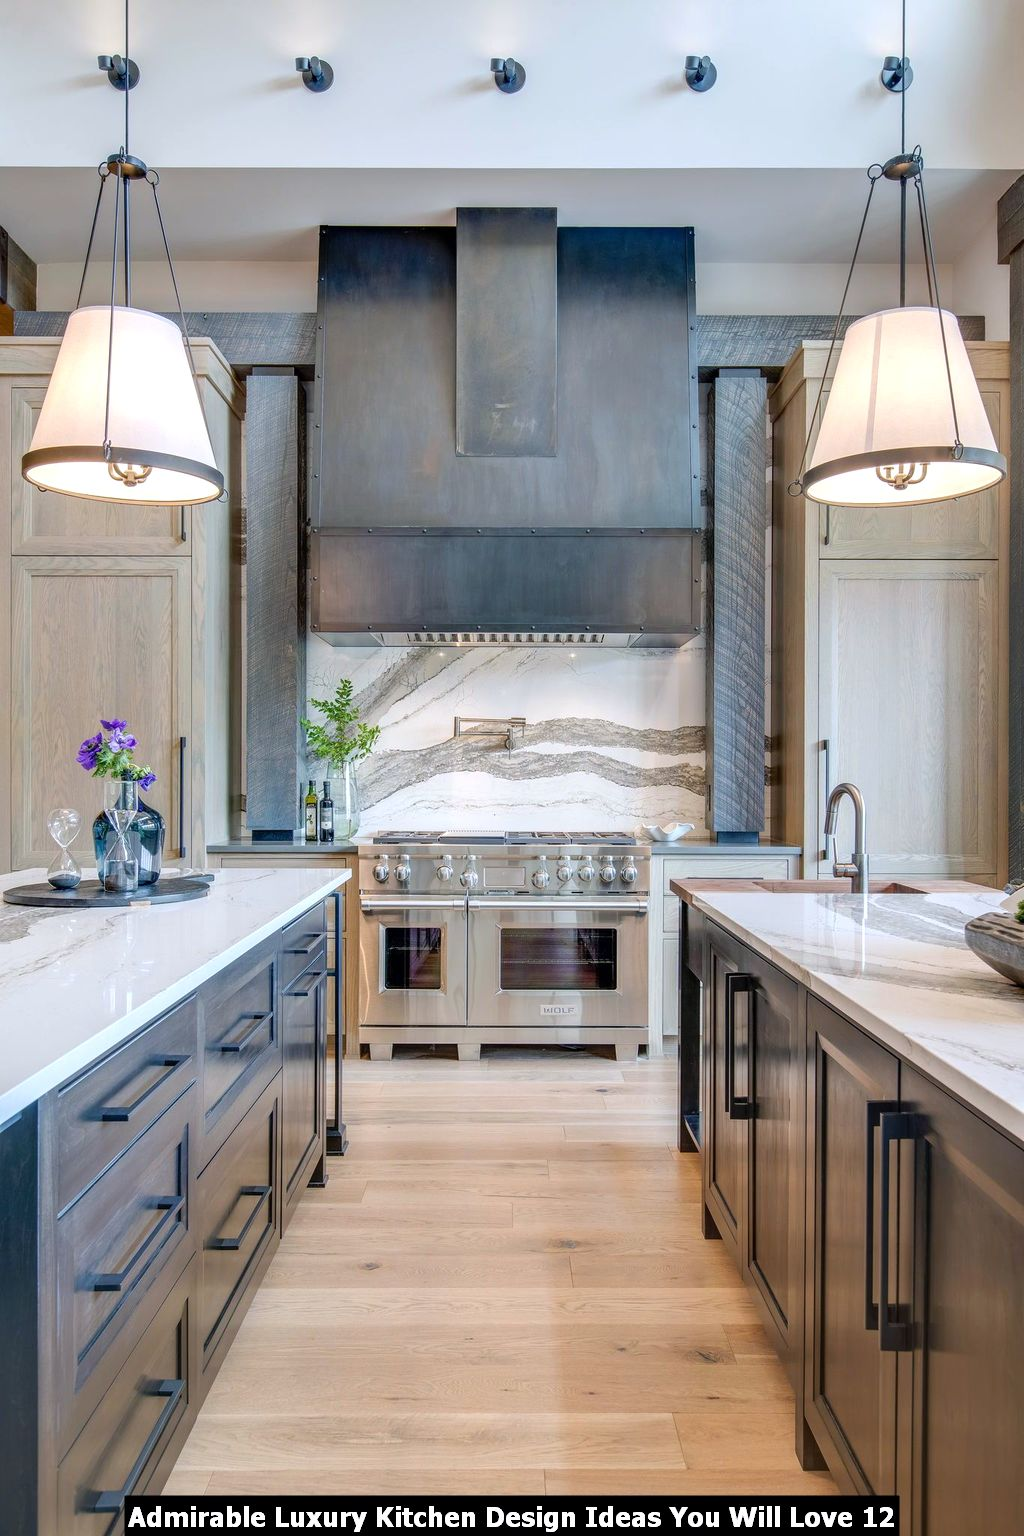 Admirable Luxury Kitchen Design Ideas You Will Love 12